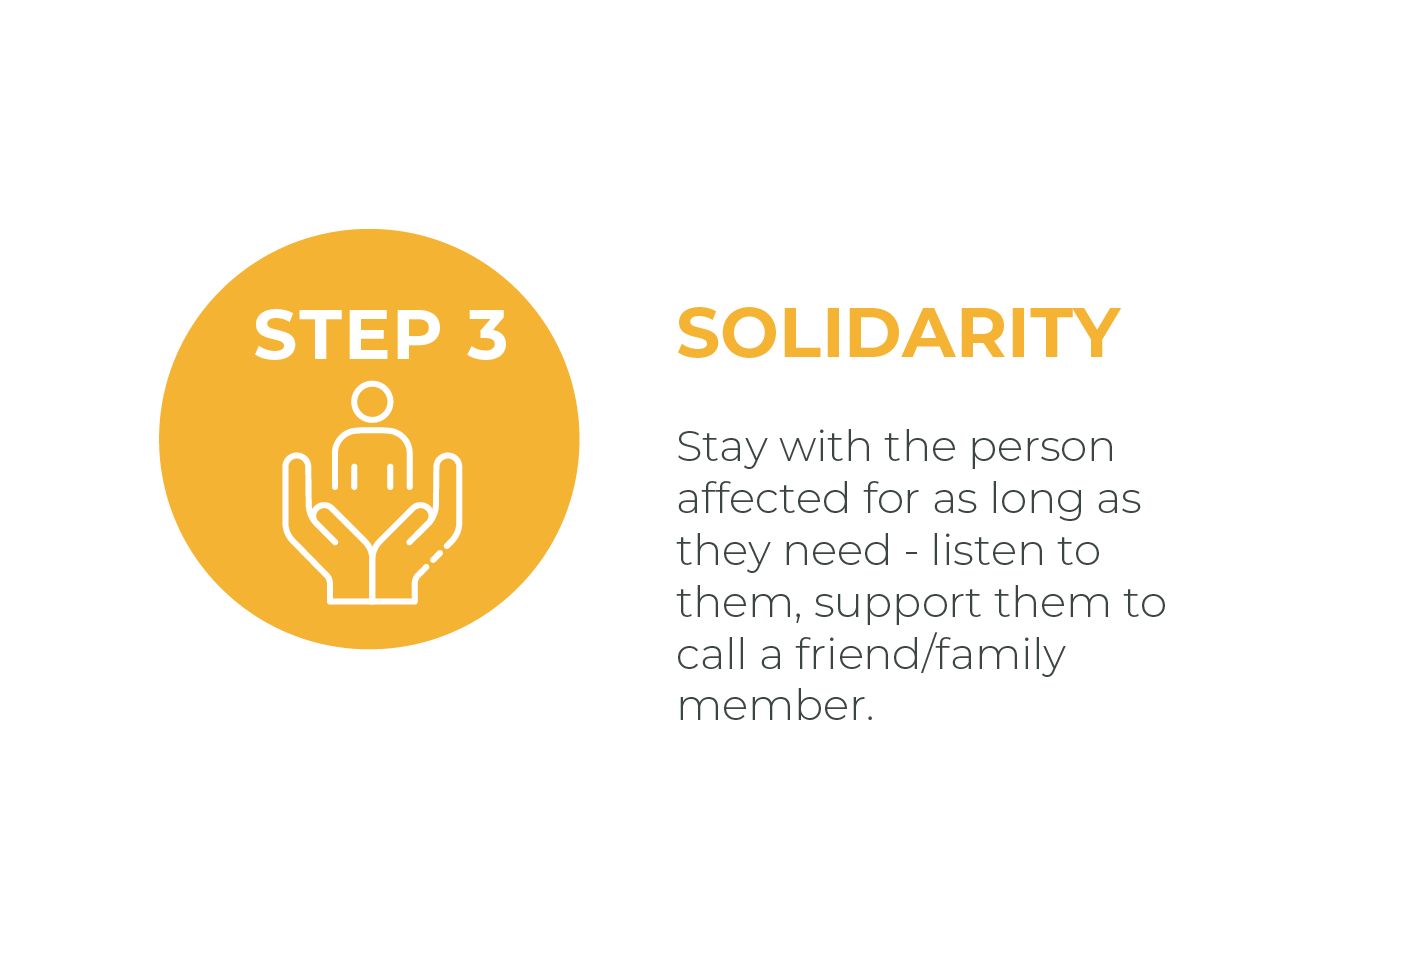 Graphic showing solidarity step and description